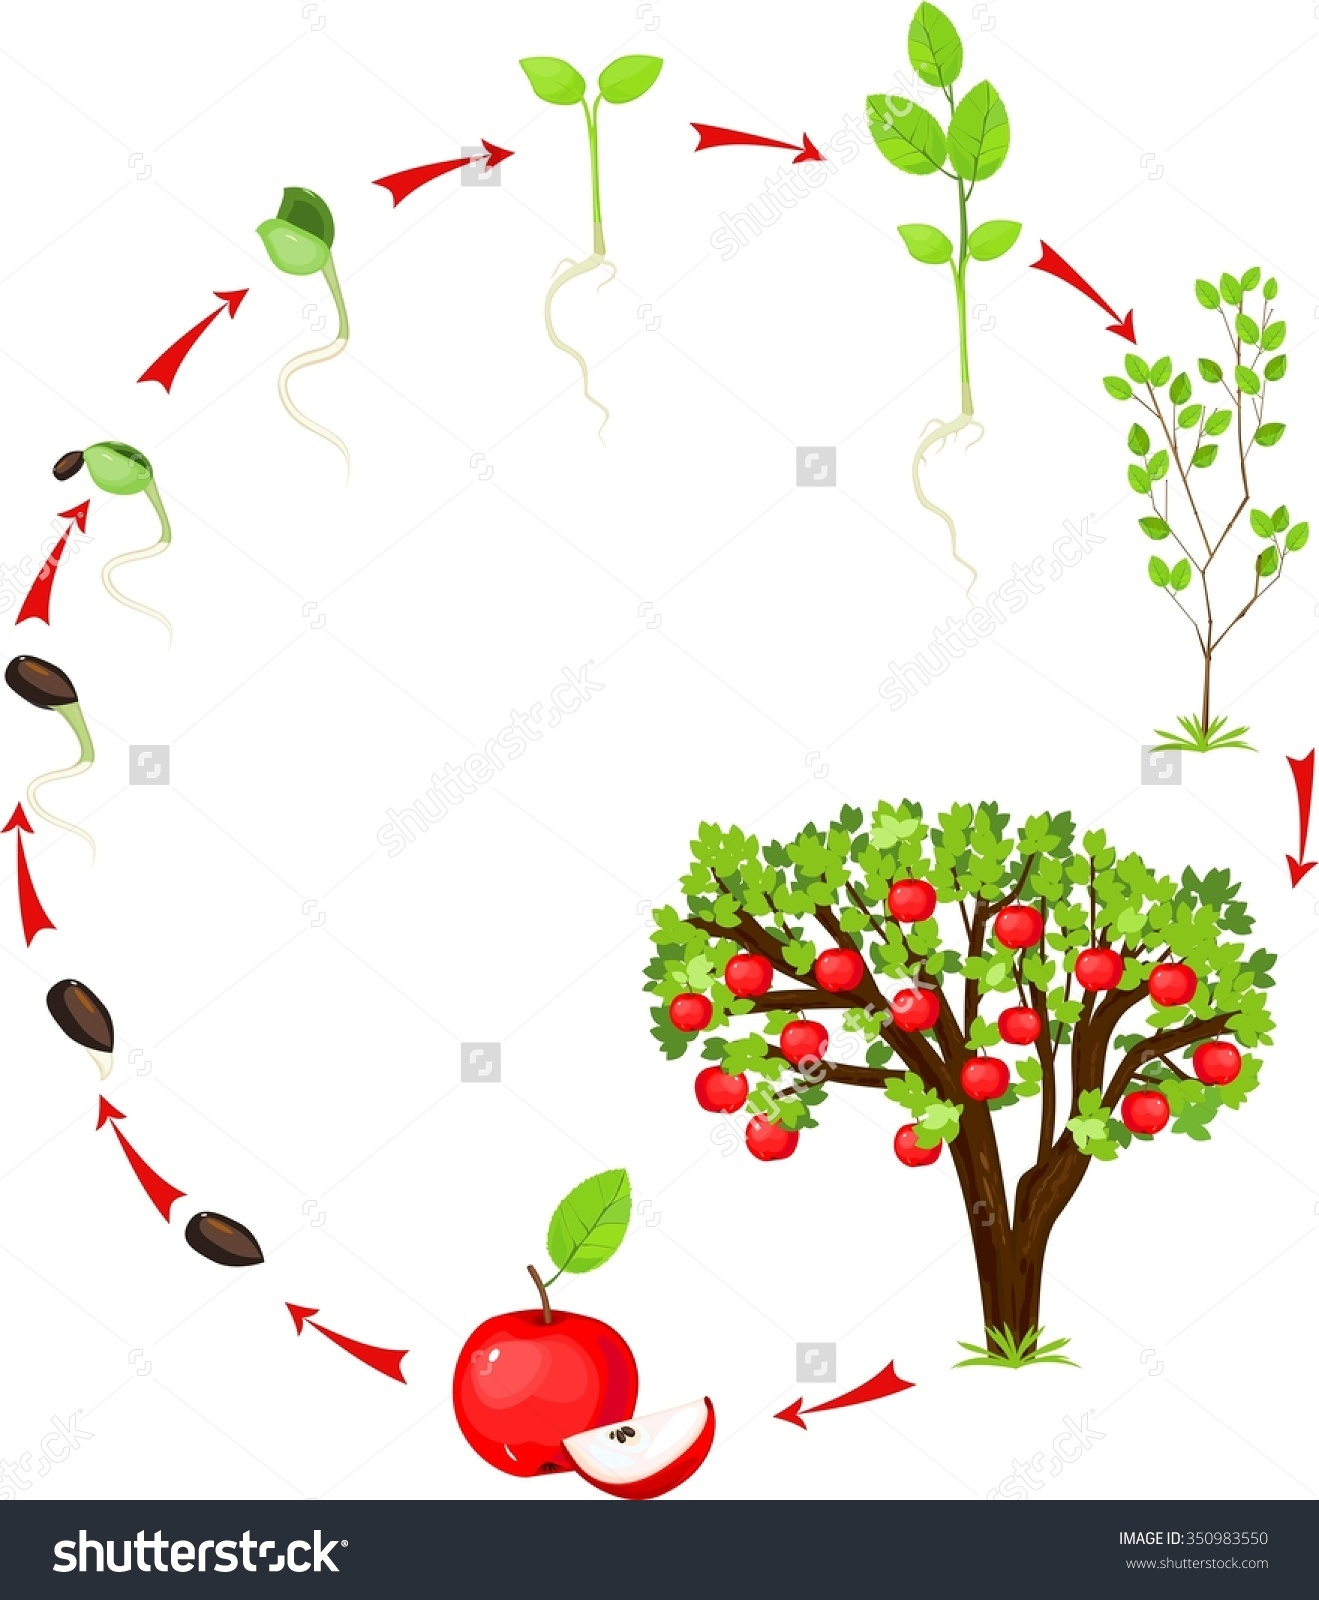 Seed clipart cartoon Cycle tree collections clipart Apple